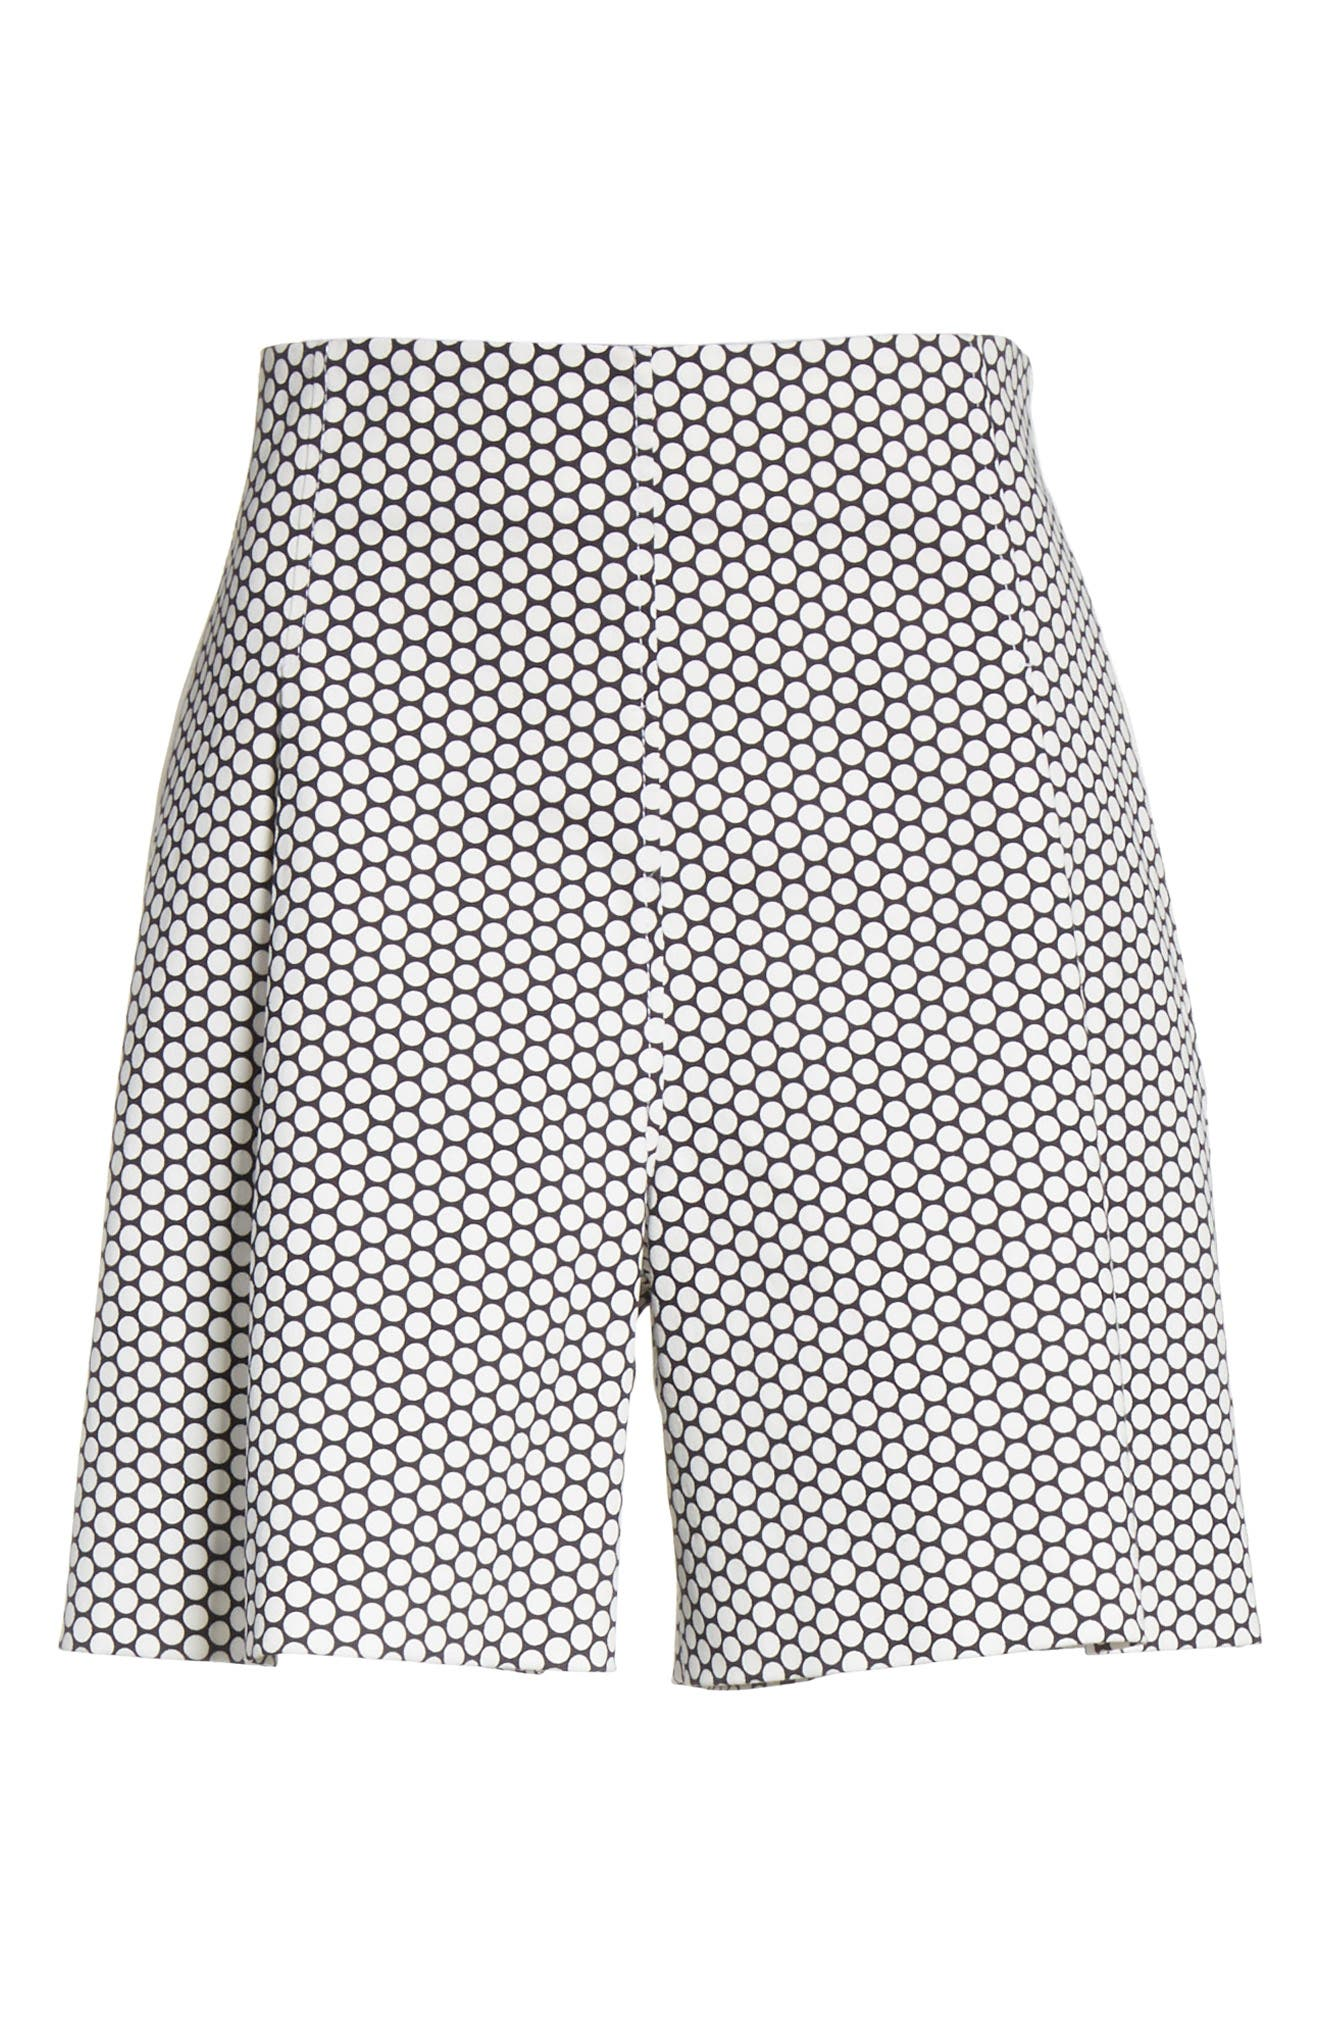 DVF,                             Diane von Furstenberg Dot High Waist Stretch Cotton Shorts,                             Alternate thumbnail 6, color,                             905